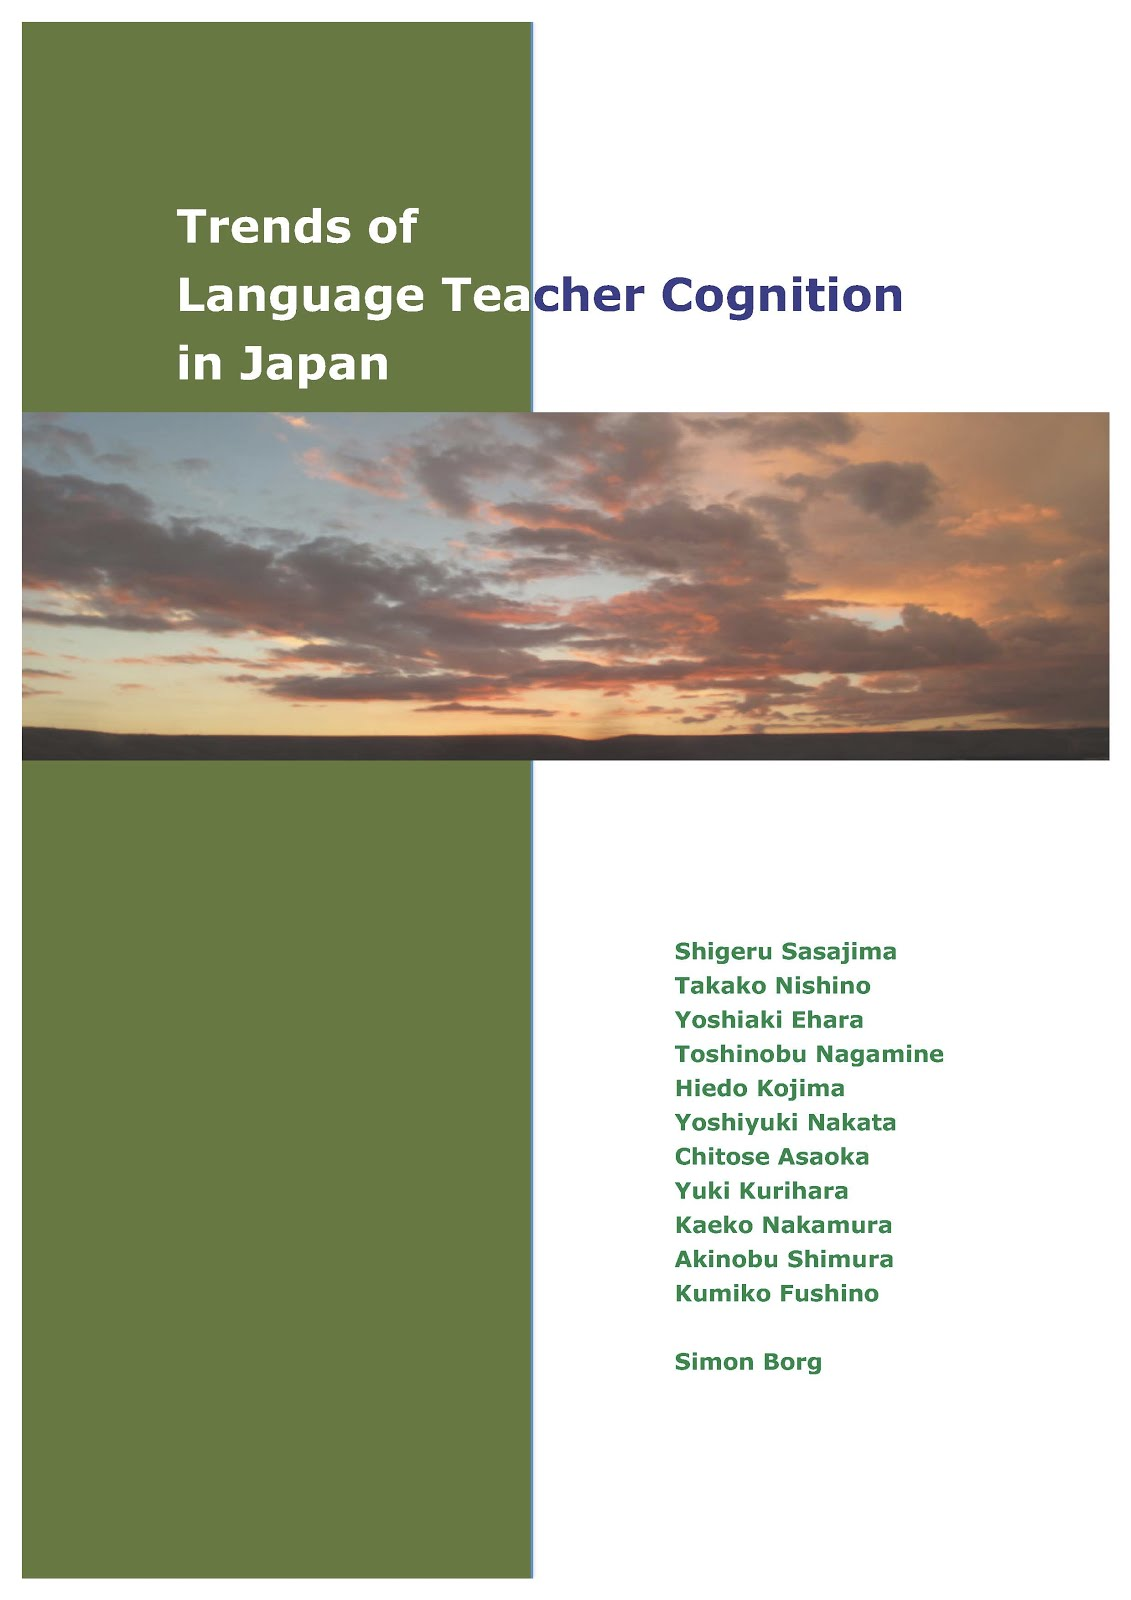 Summary of Trends of Language Teacher Cognition in Japan